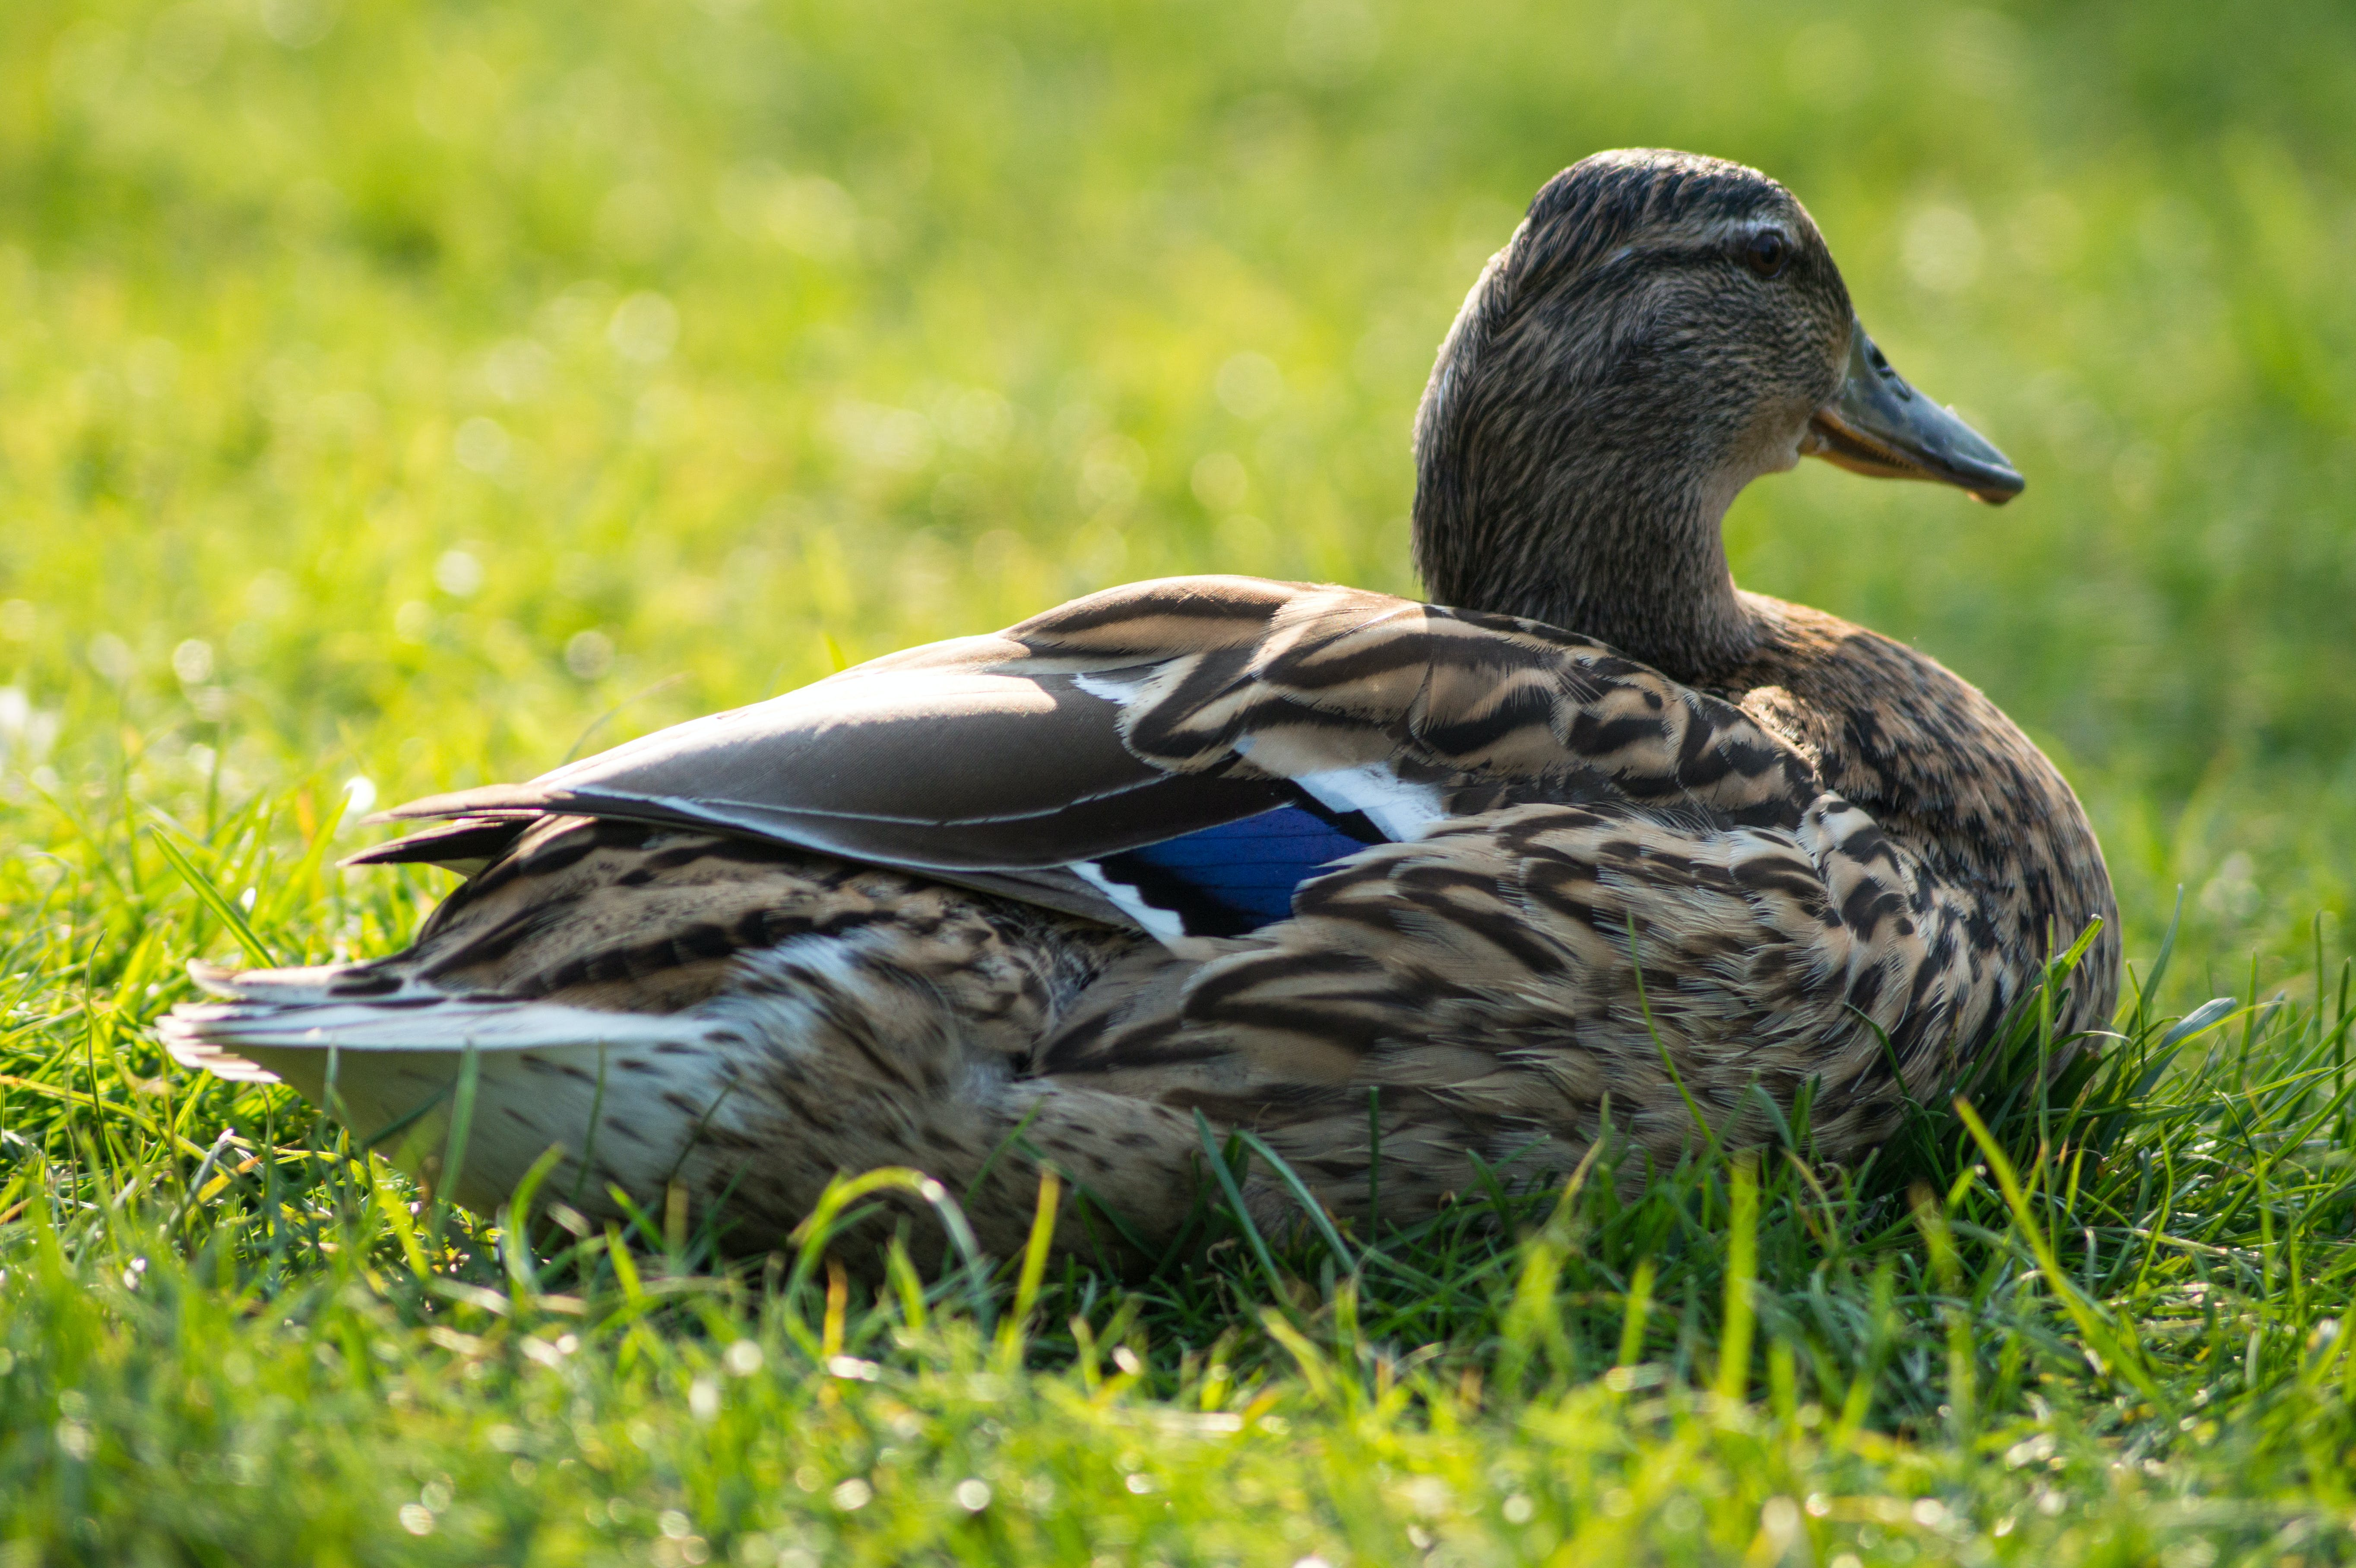 Gray and Beige Duck on Grass